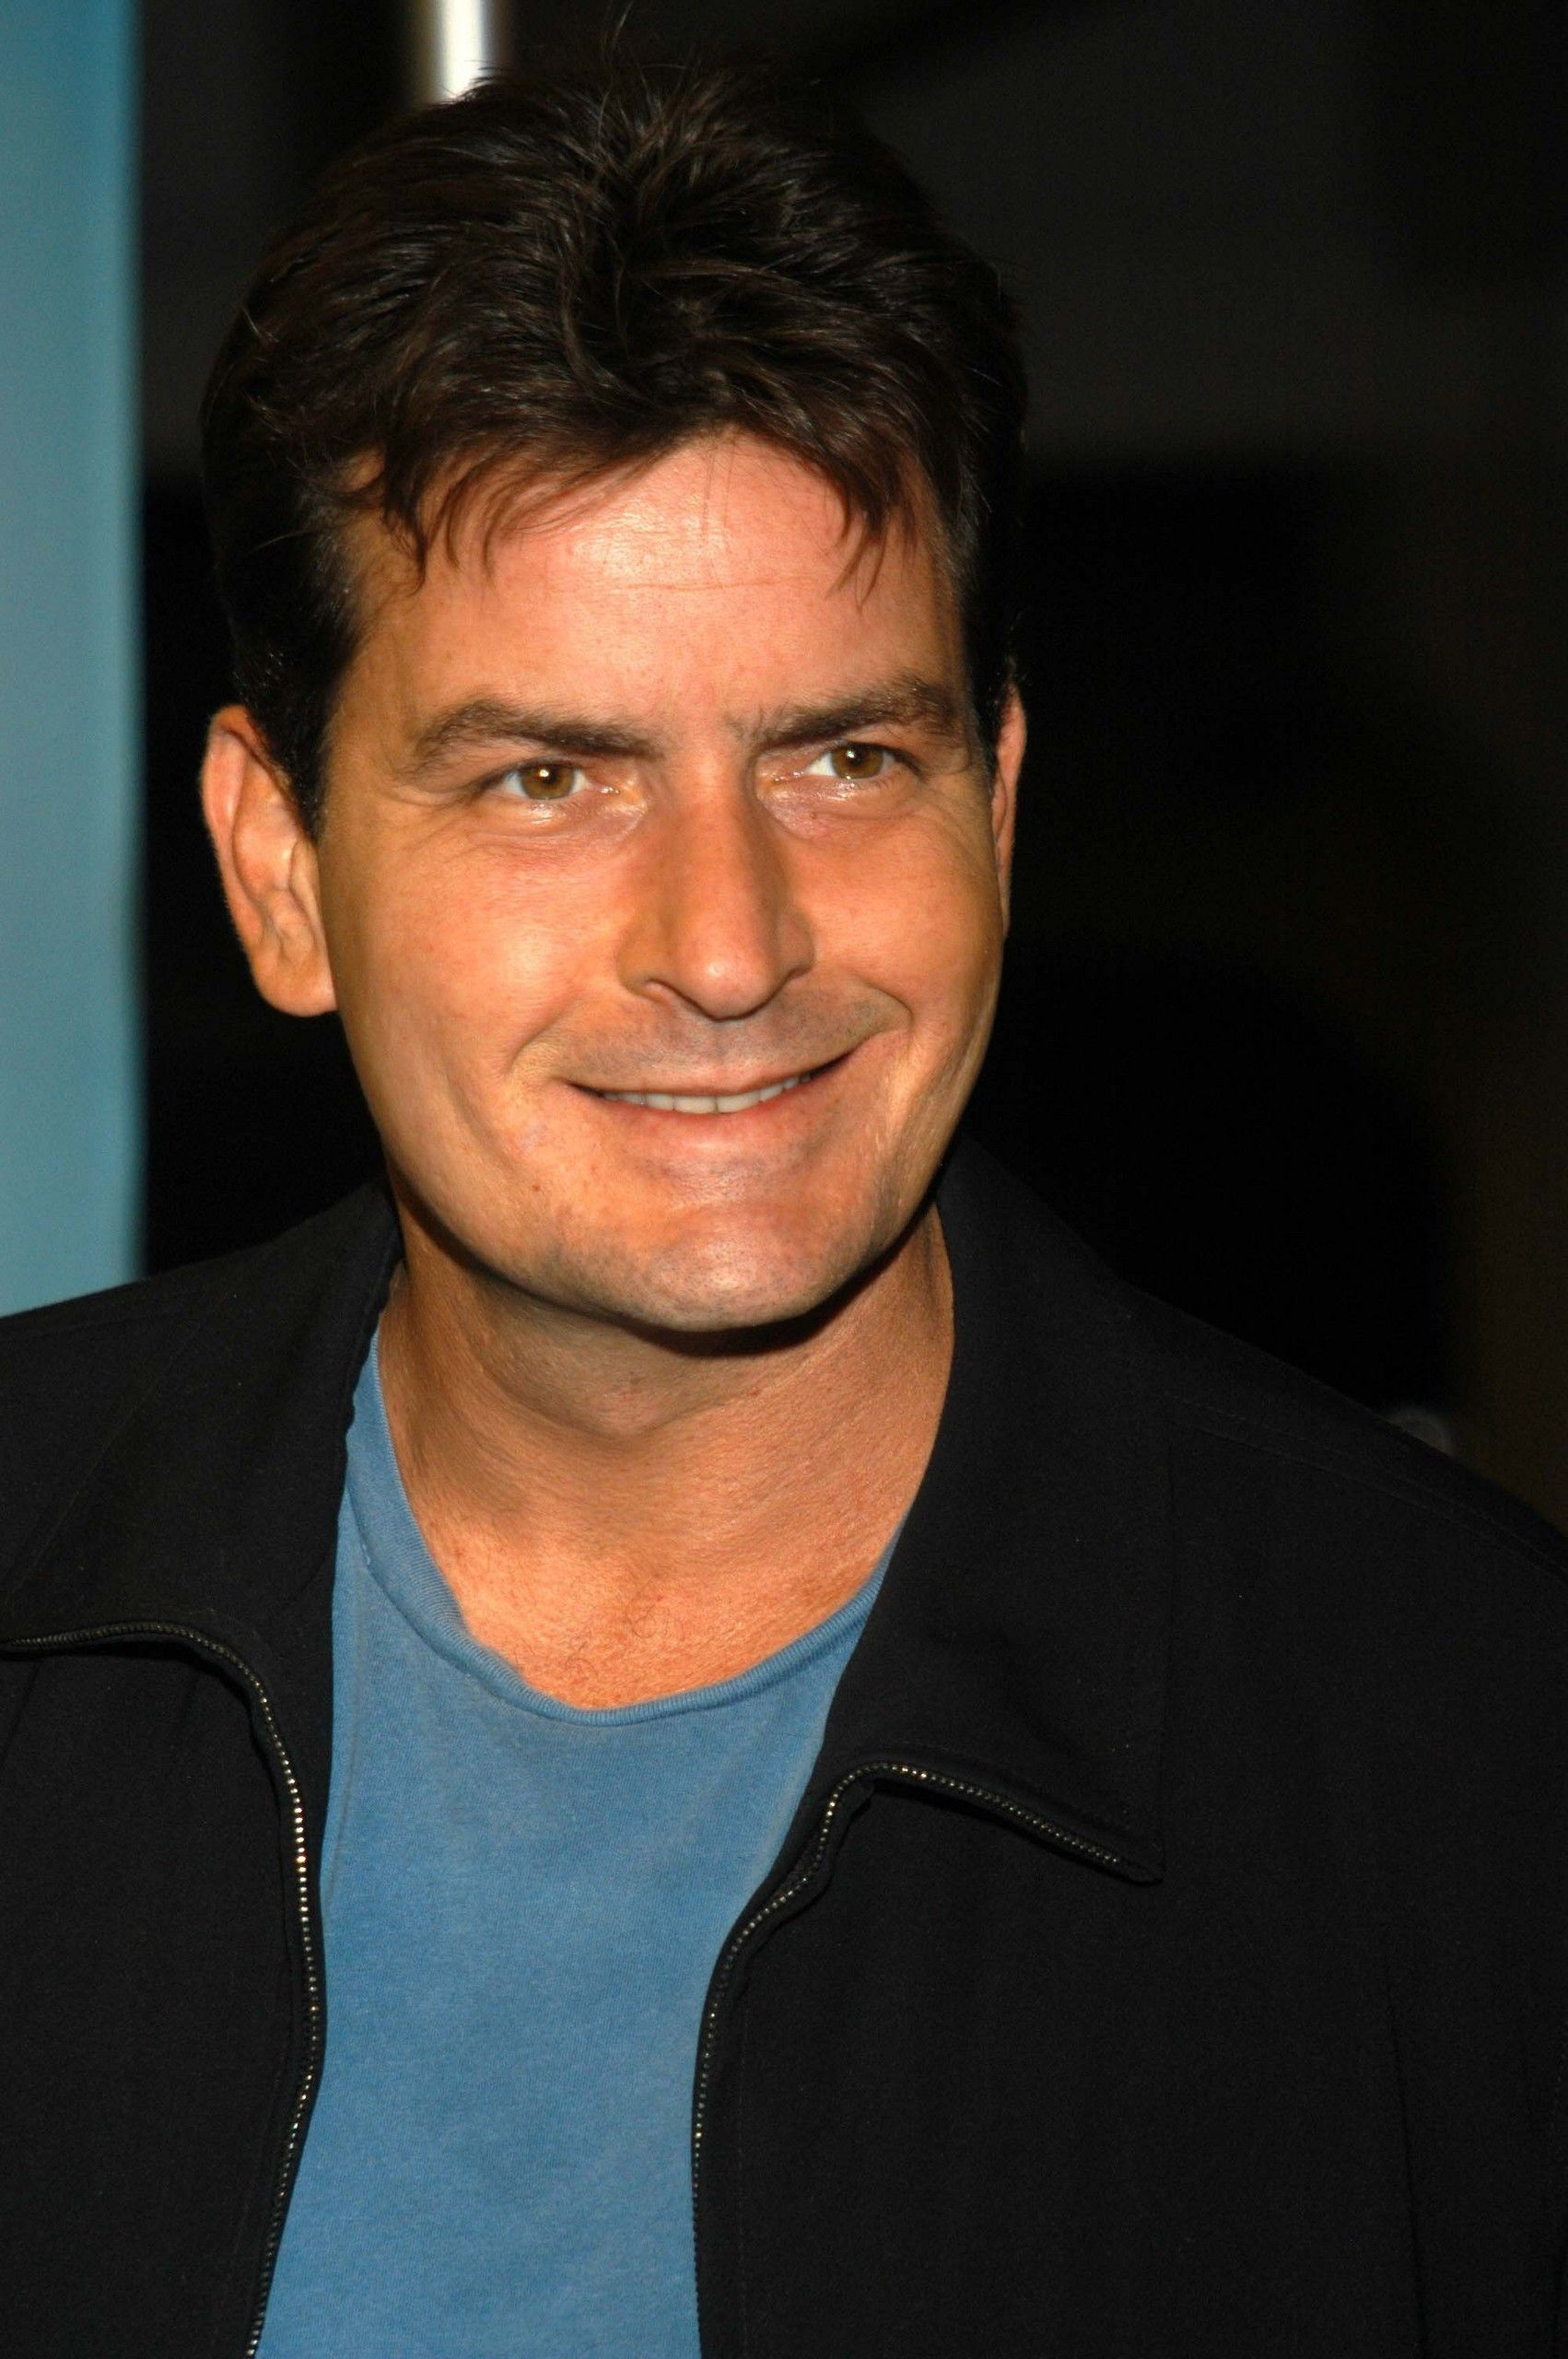 17 best ideas about charlie sheen dad charlie sheen 17 best ideas about charlie sheen dad charlie sheen father emilio estevez charlie sheen and charlie sheen real